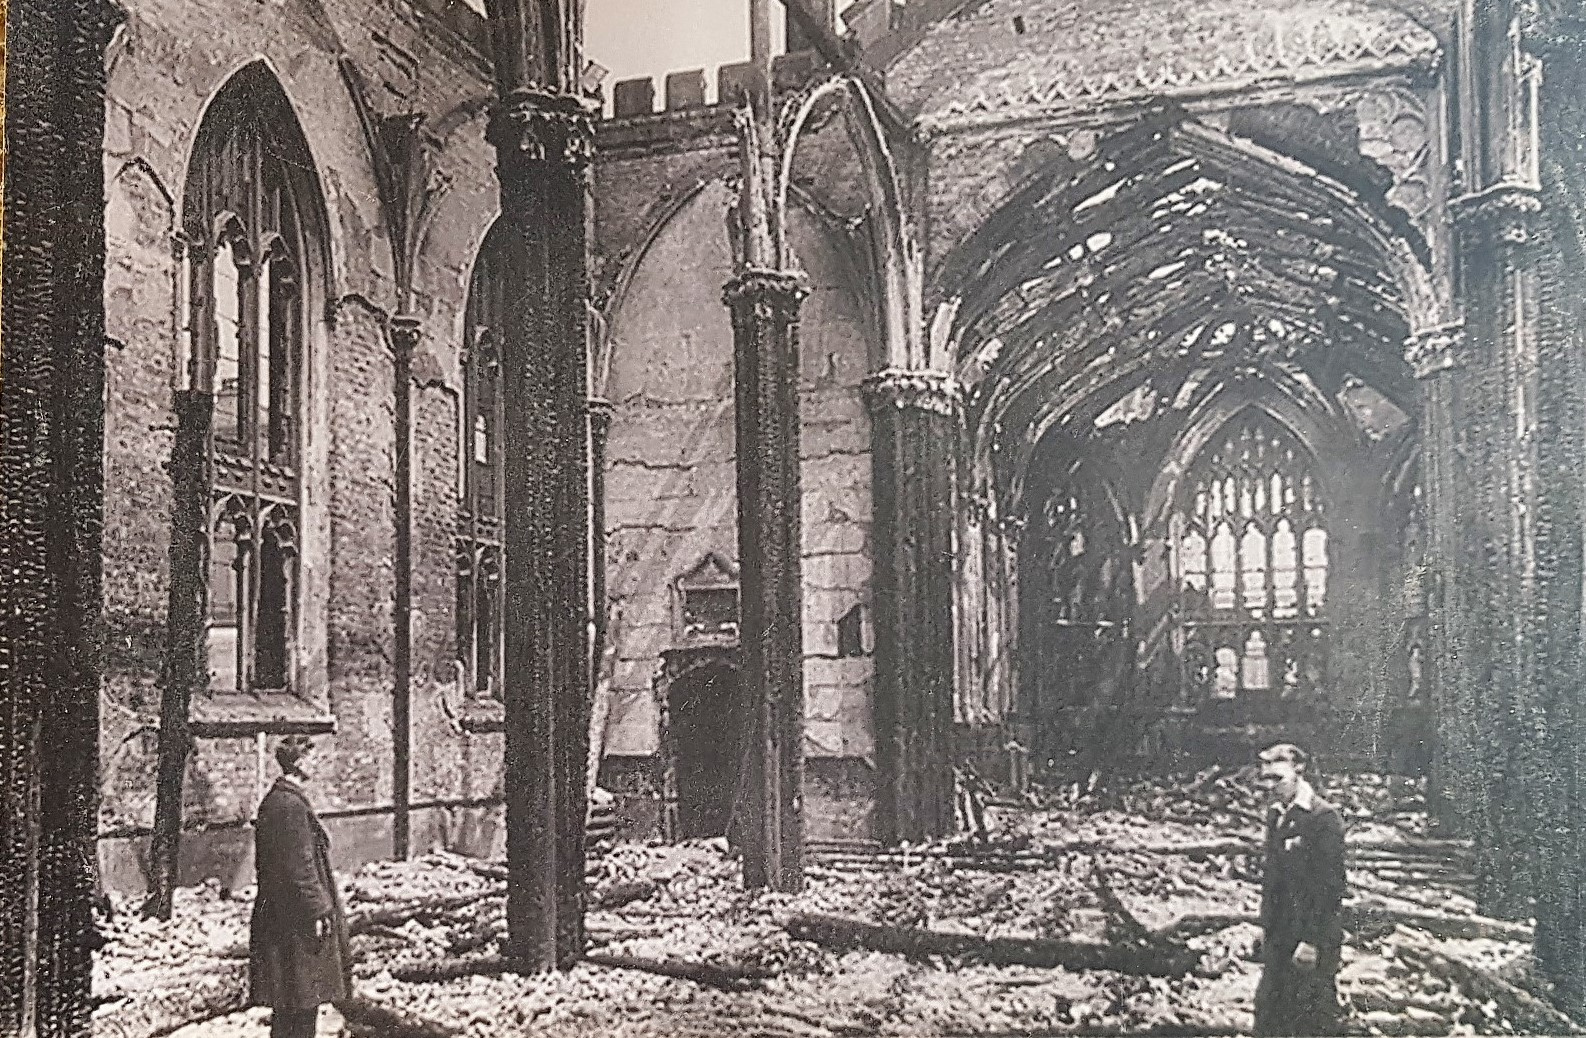 Black and white photo of a bombed church interior